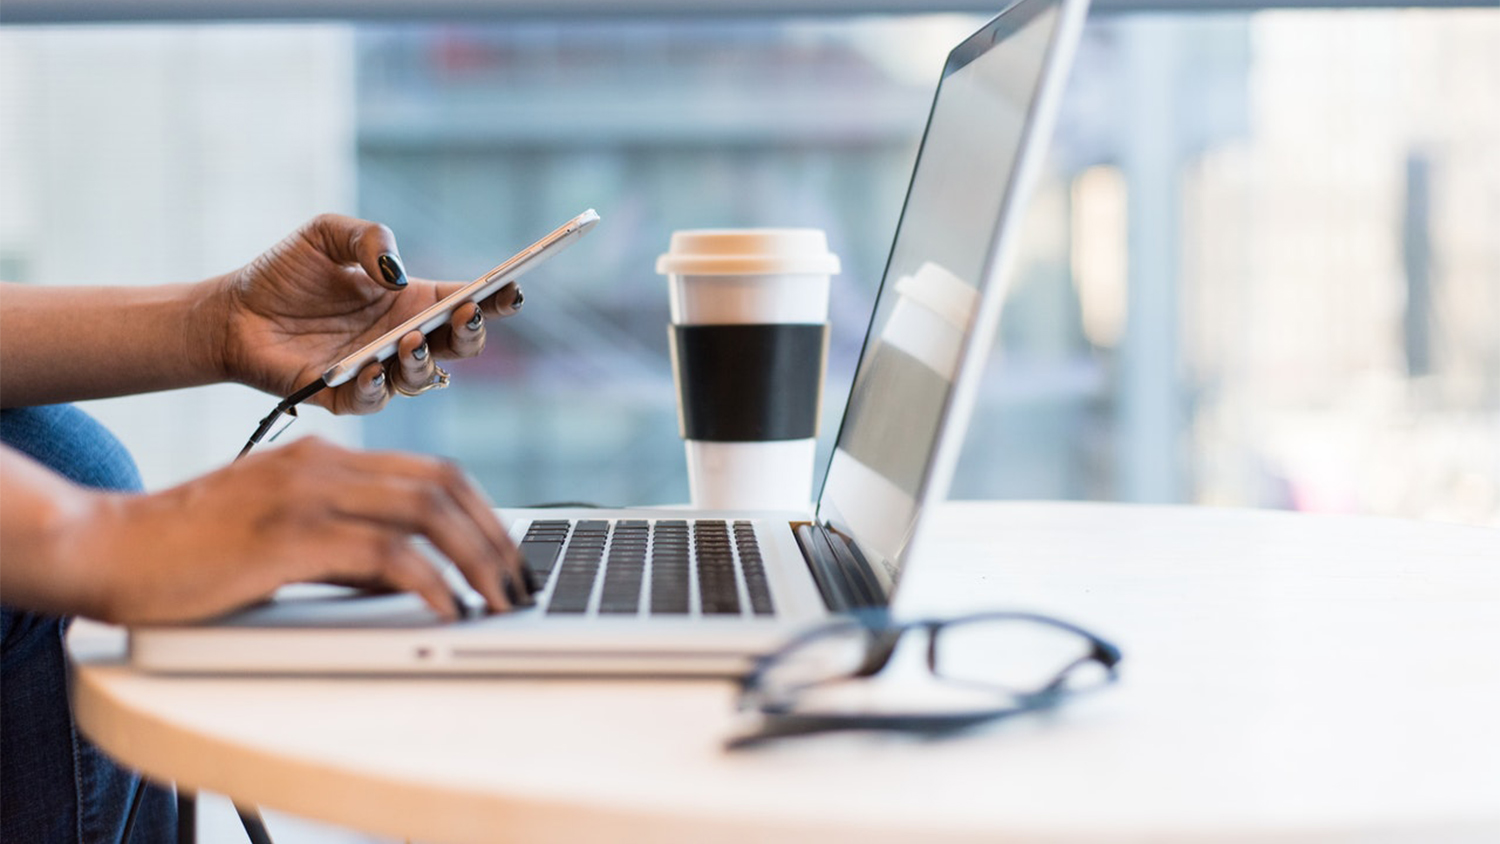 woman on laptop with a cup of coffee